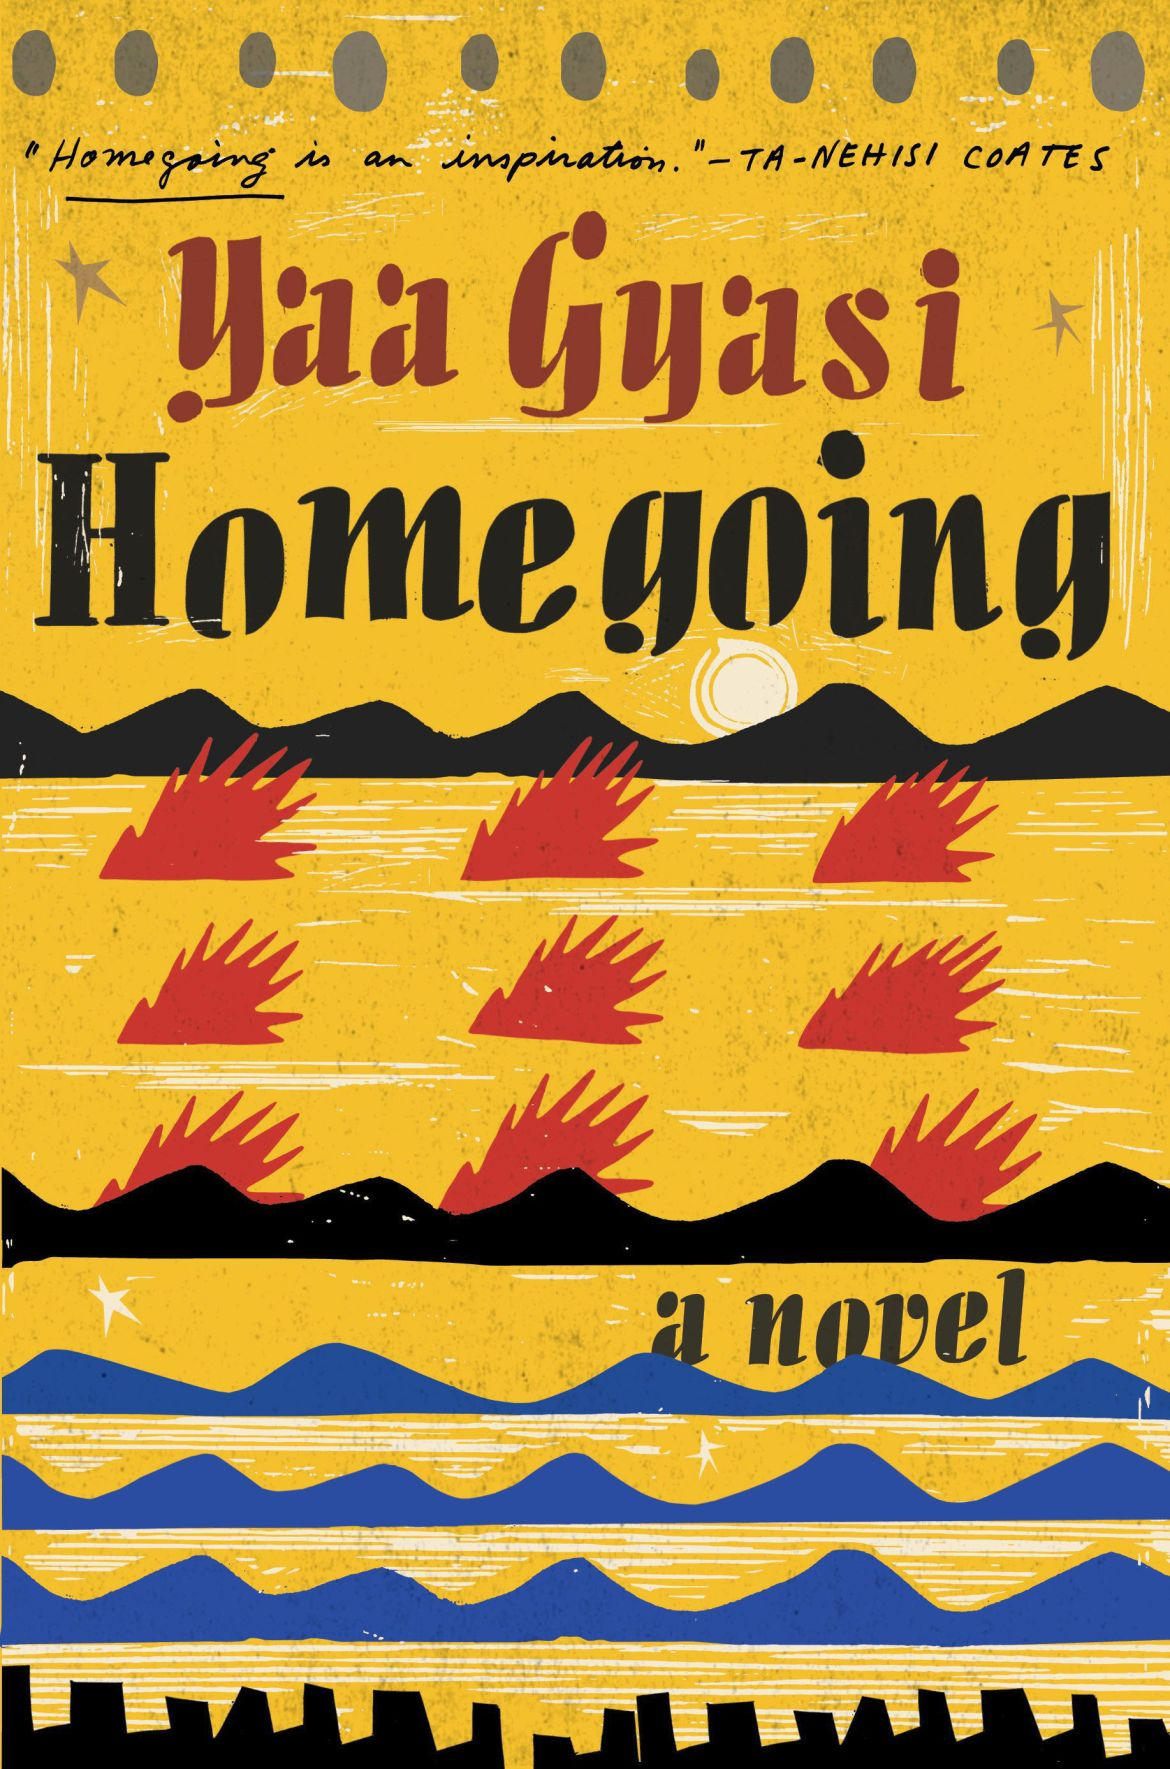 'Homegoing' New novel examines West African and African-American experience